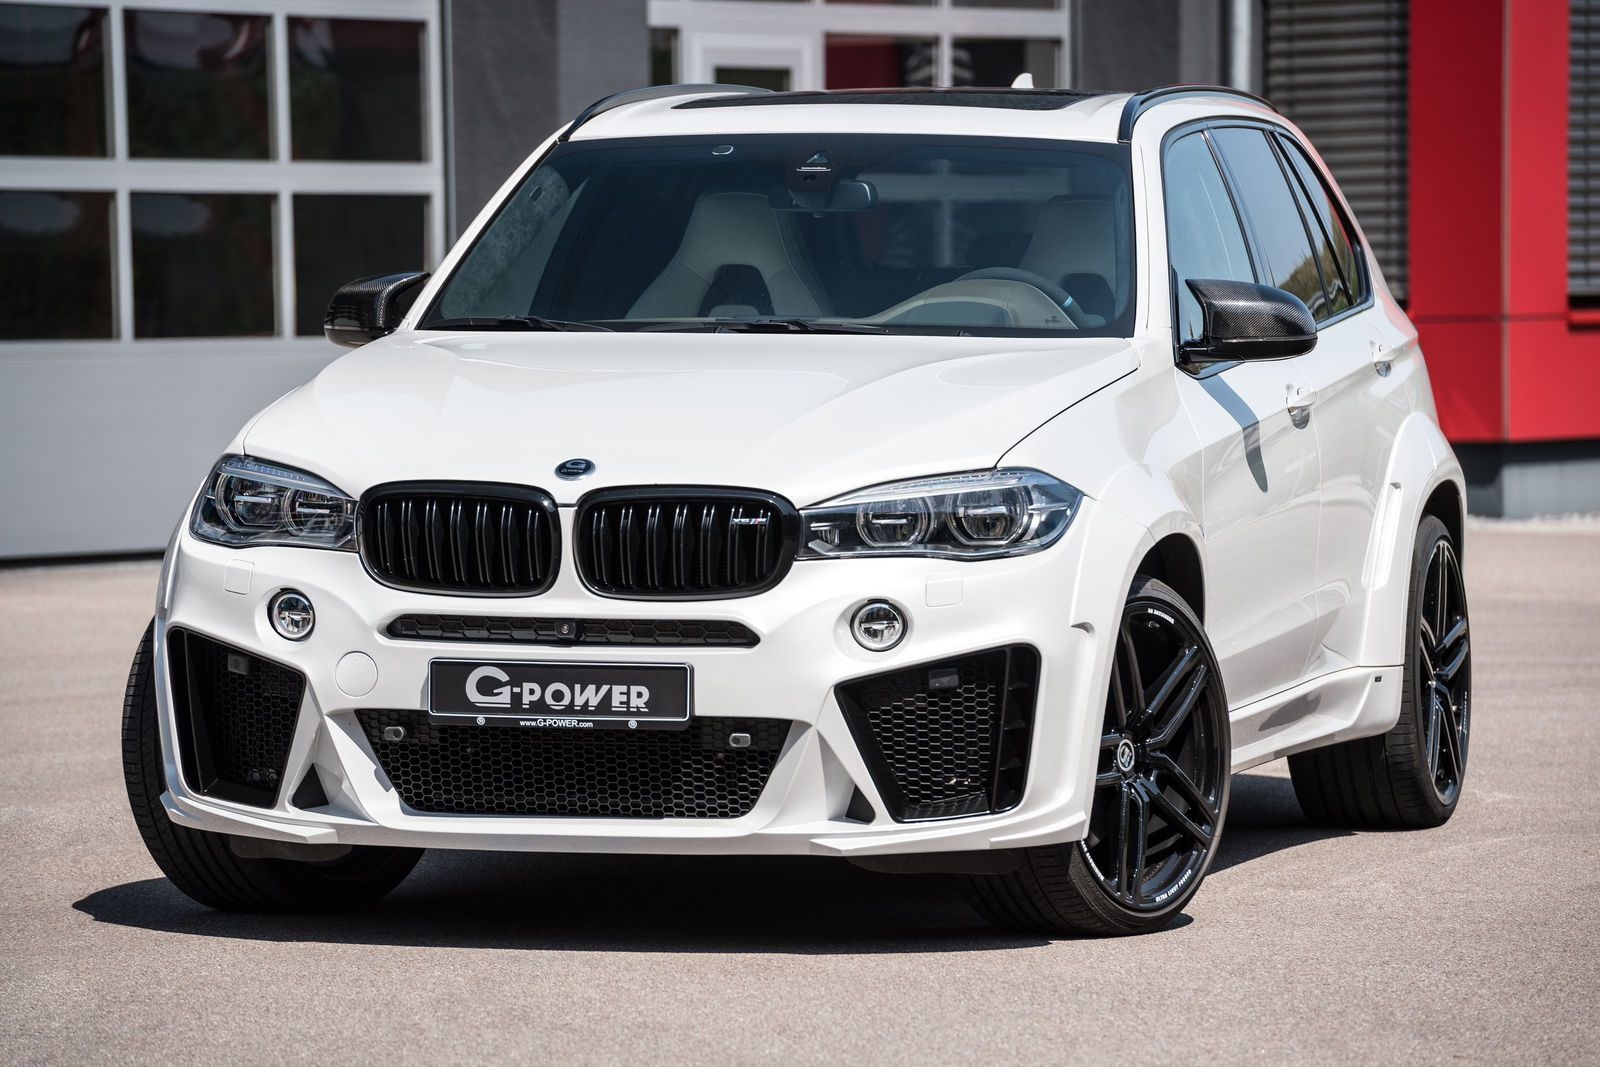 G Power S Bmw X5 M Is An Extroverted Typhoon With 750 Horses W